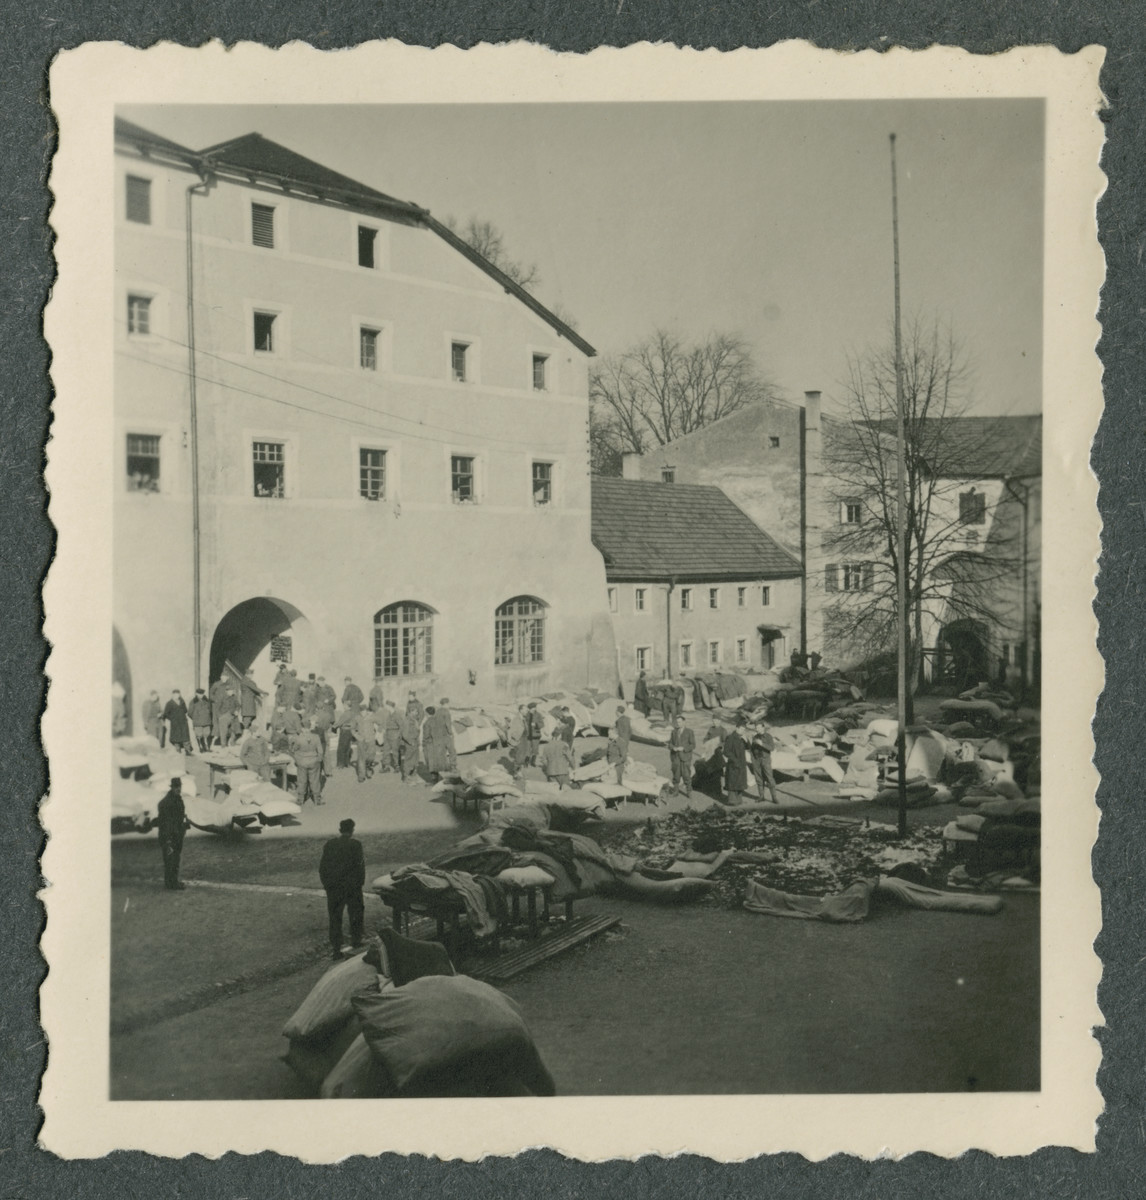 Prisoners either sort or open up bedding and bundles in the courtyard of Tittmoning castle.